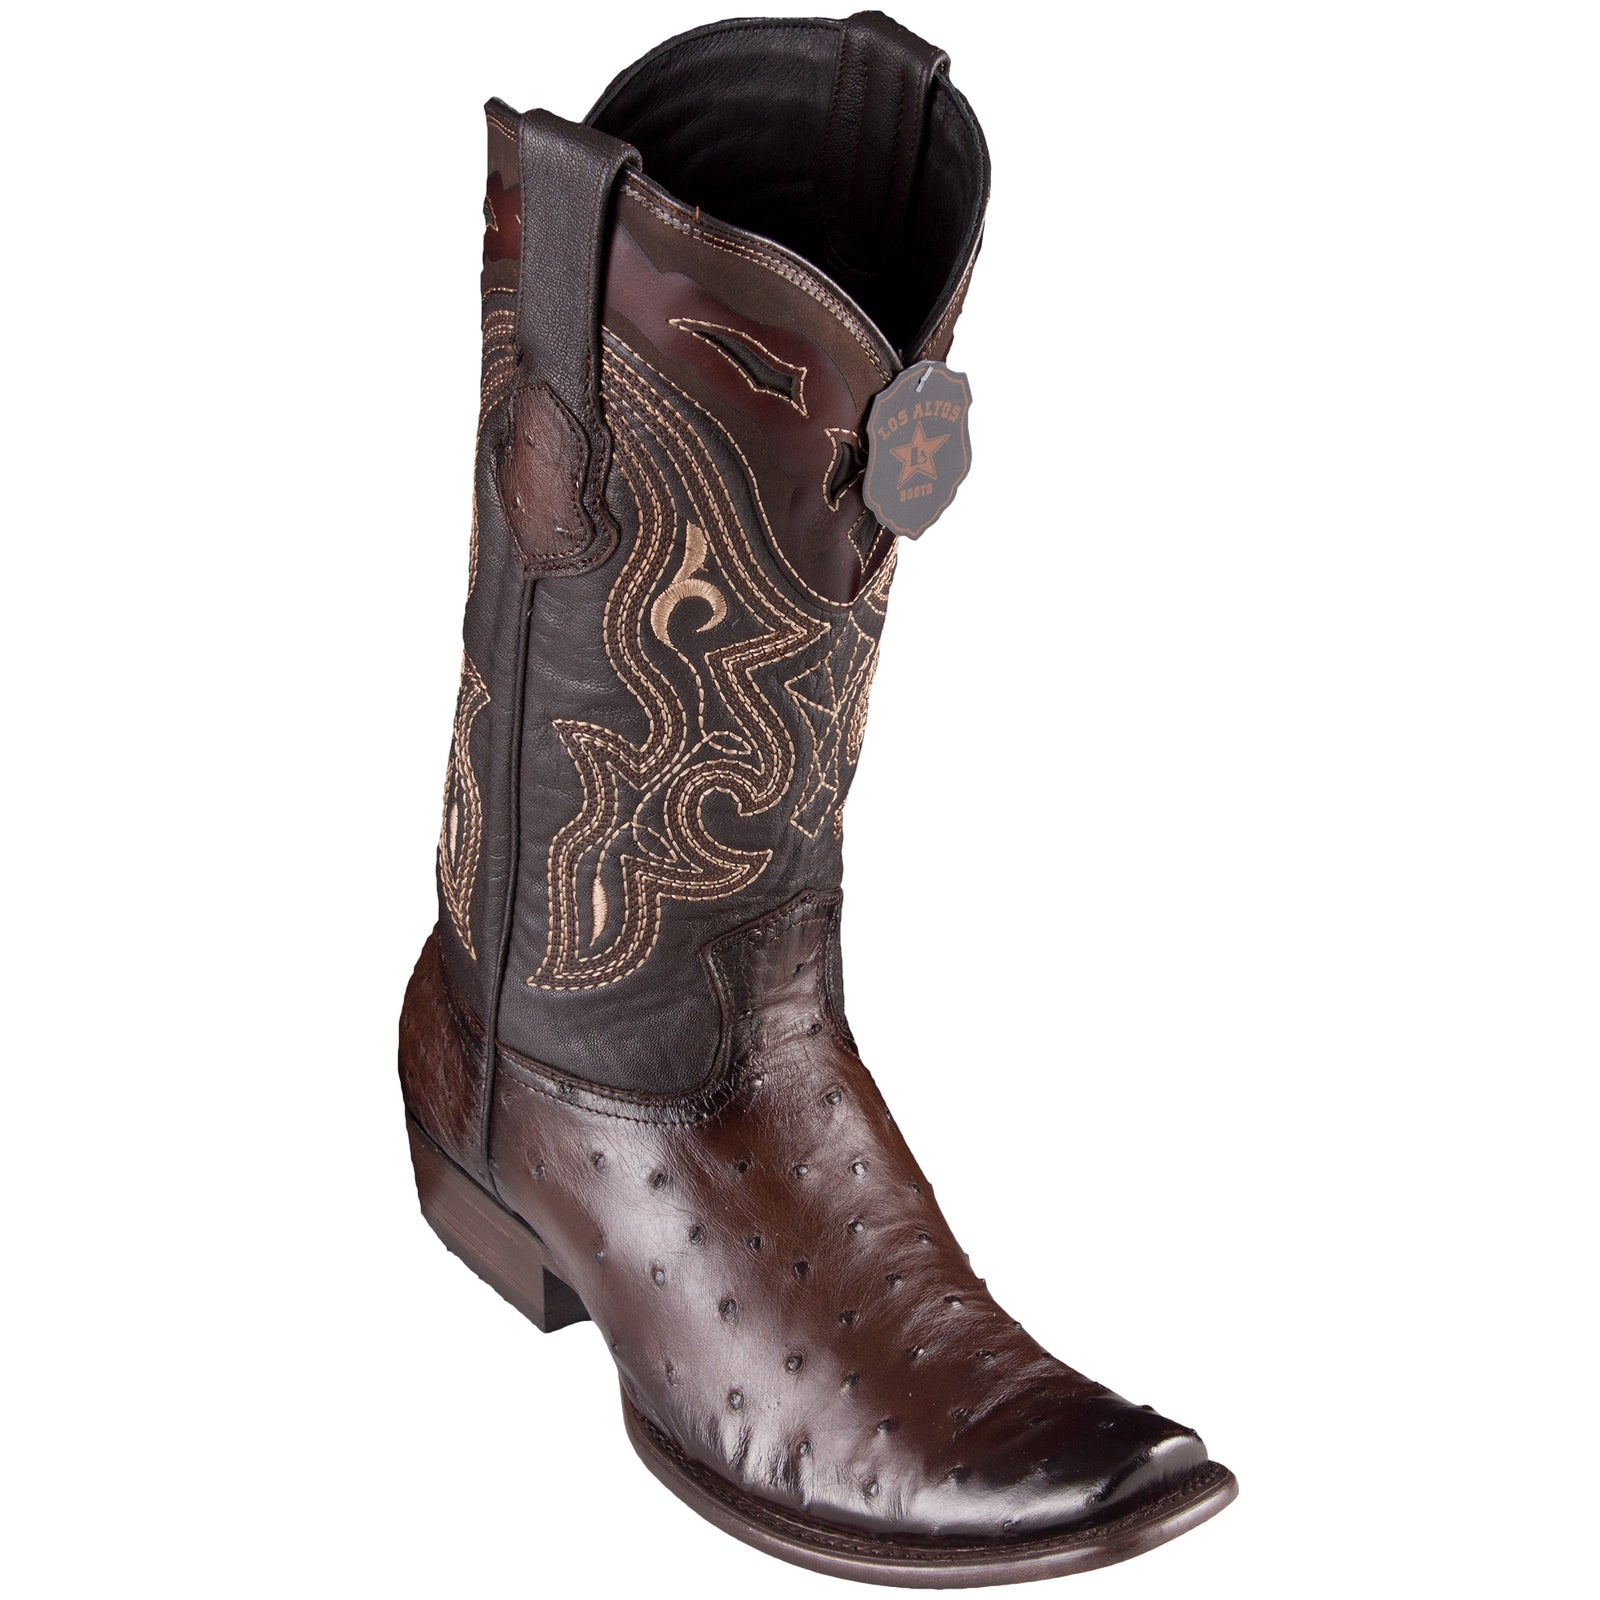 Los Altos Men's Ostrich Faded Brown Cowboy Boots - H79 Dubai Toe